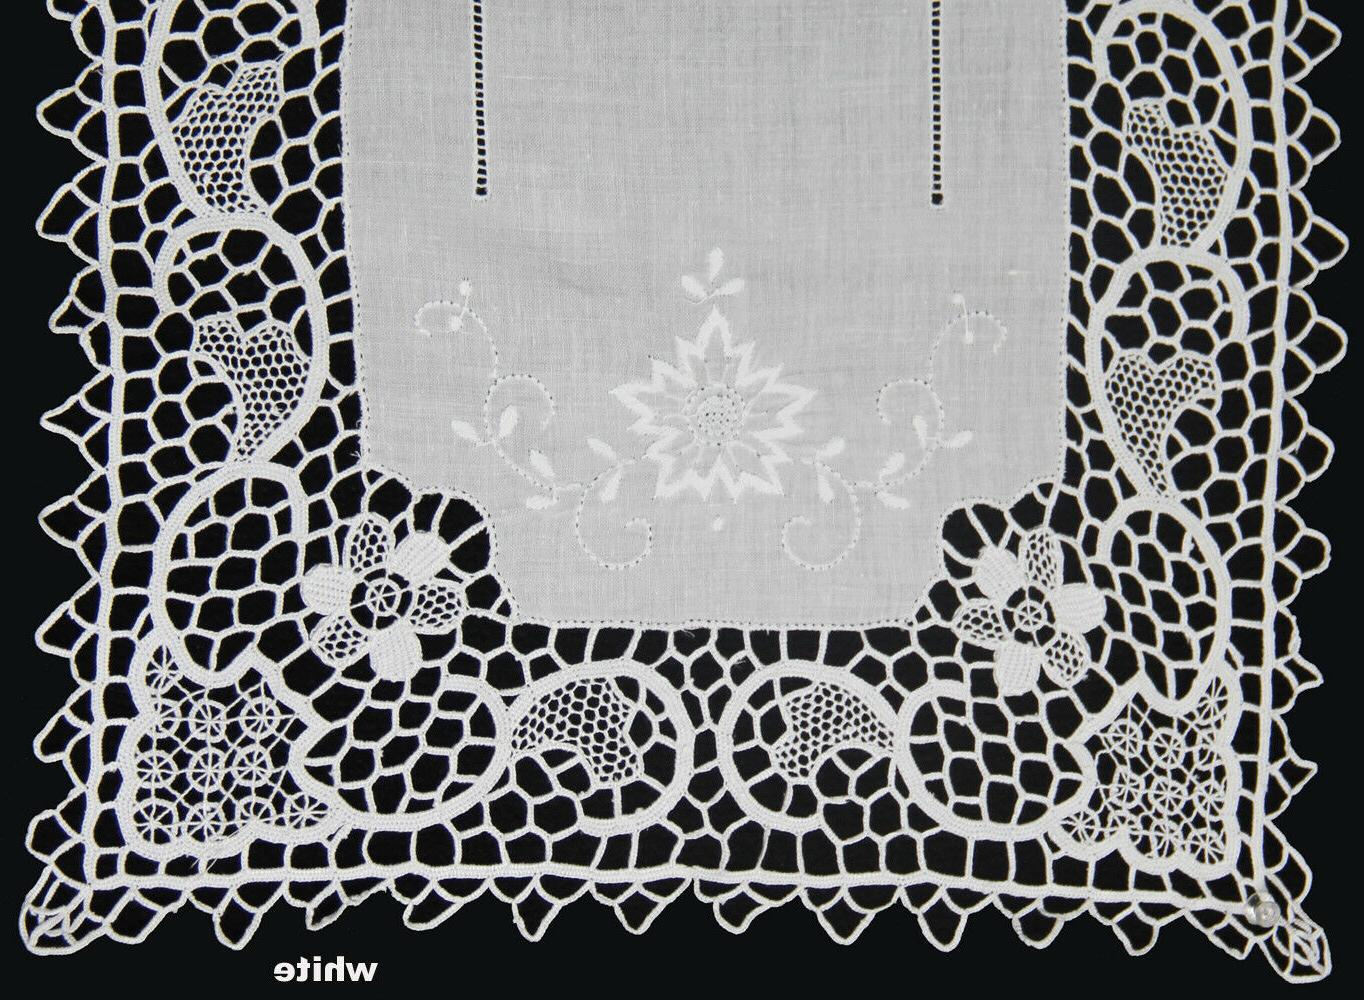 handmade reticella lace needle lace placemat table